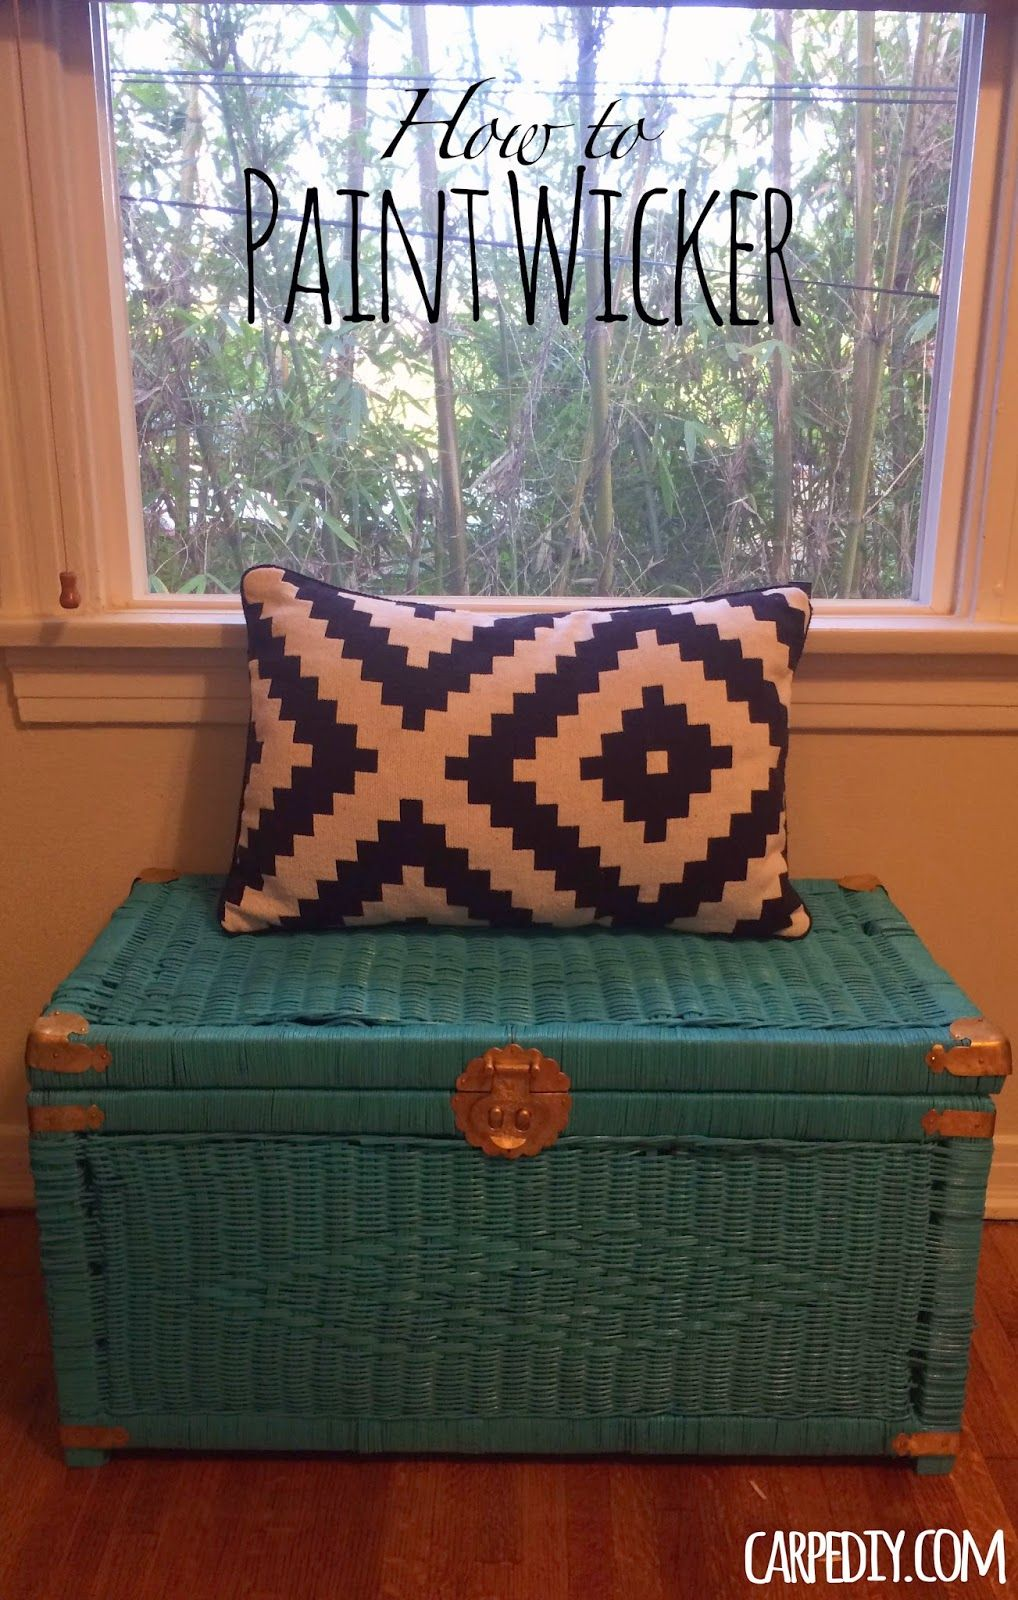 Carpe DIY: How to Paint Wicker | Decorations for the home ...